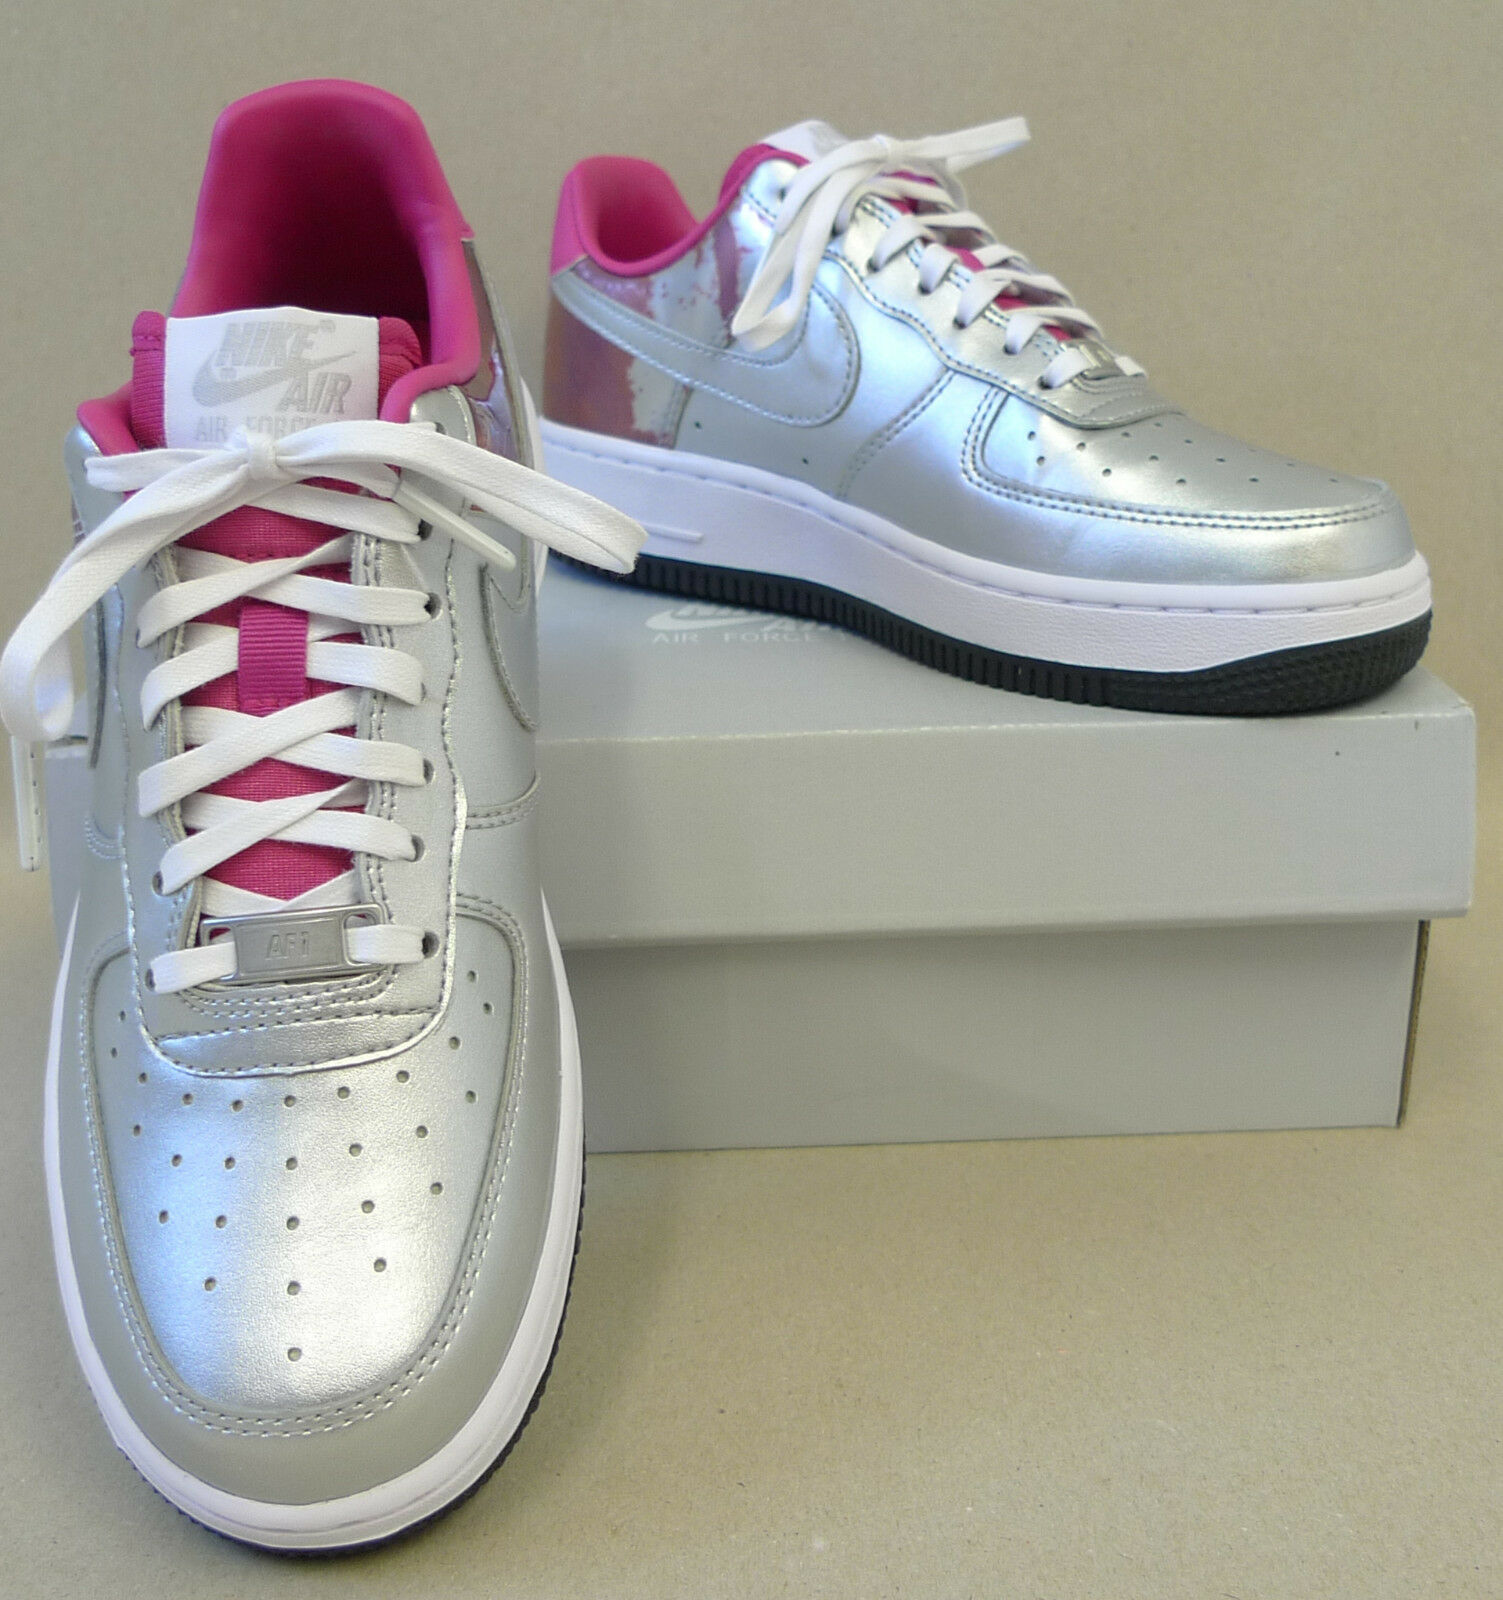 Nike Turnschuhe Air Force 1 One Wmns col. metallic Silber Rosa o Blau div. Gr (SB)